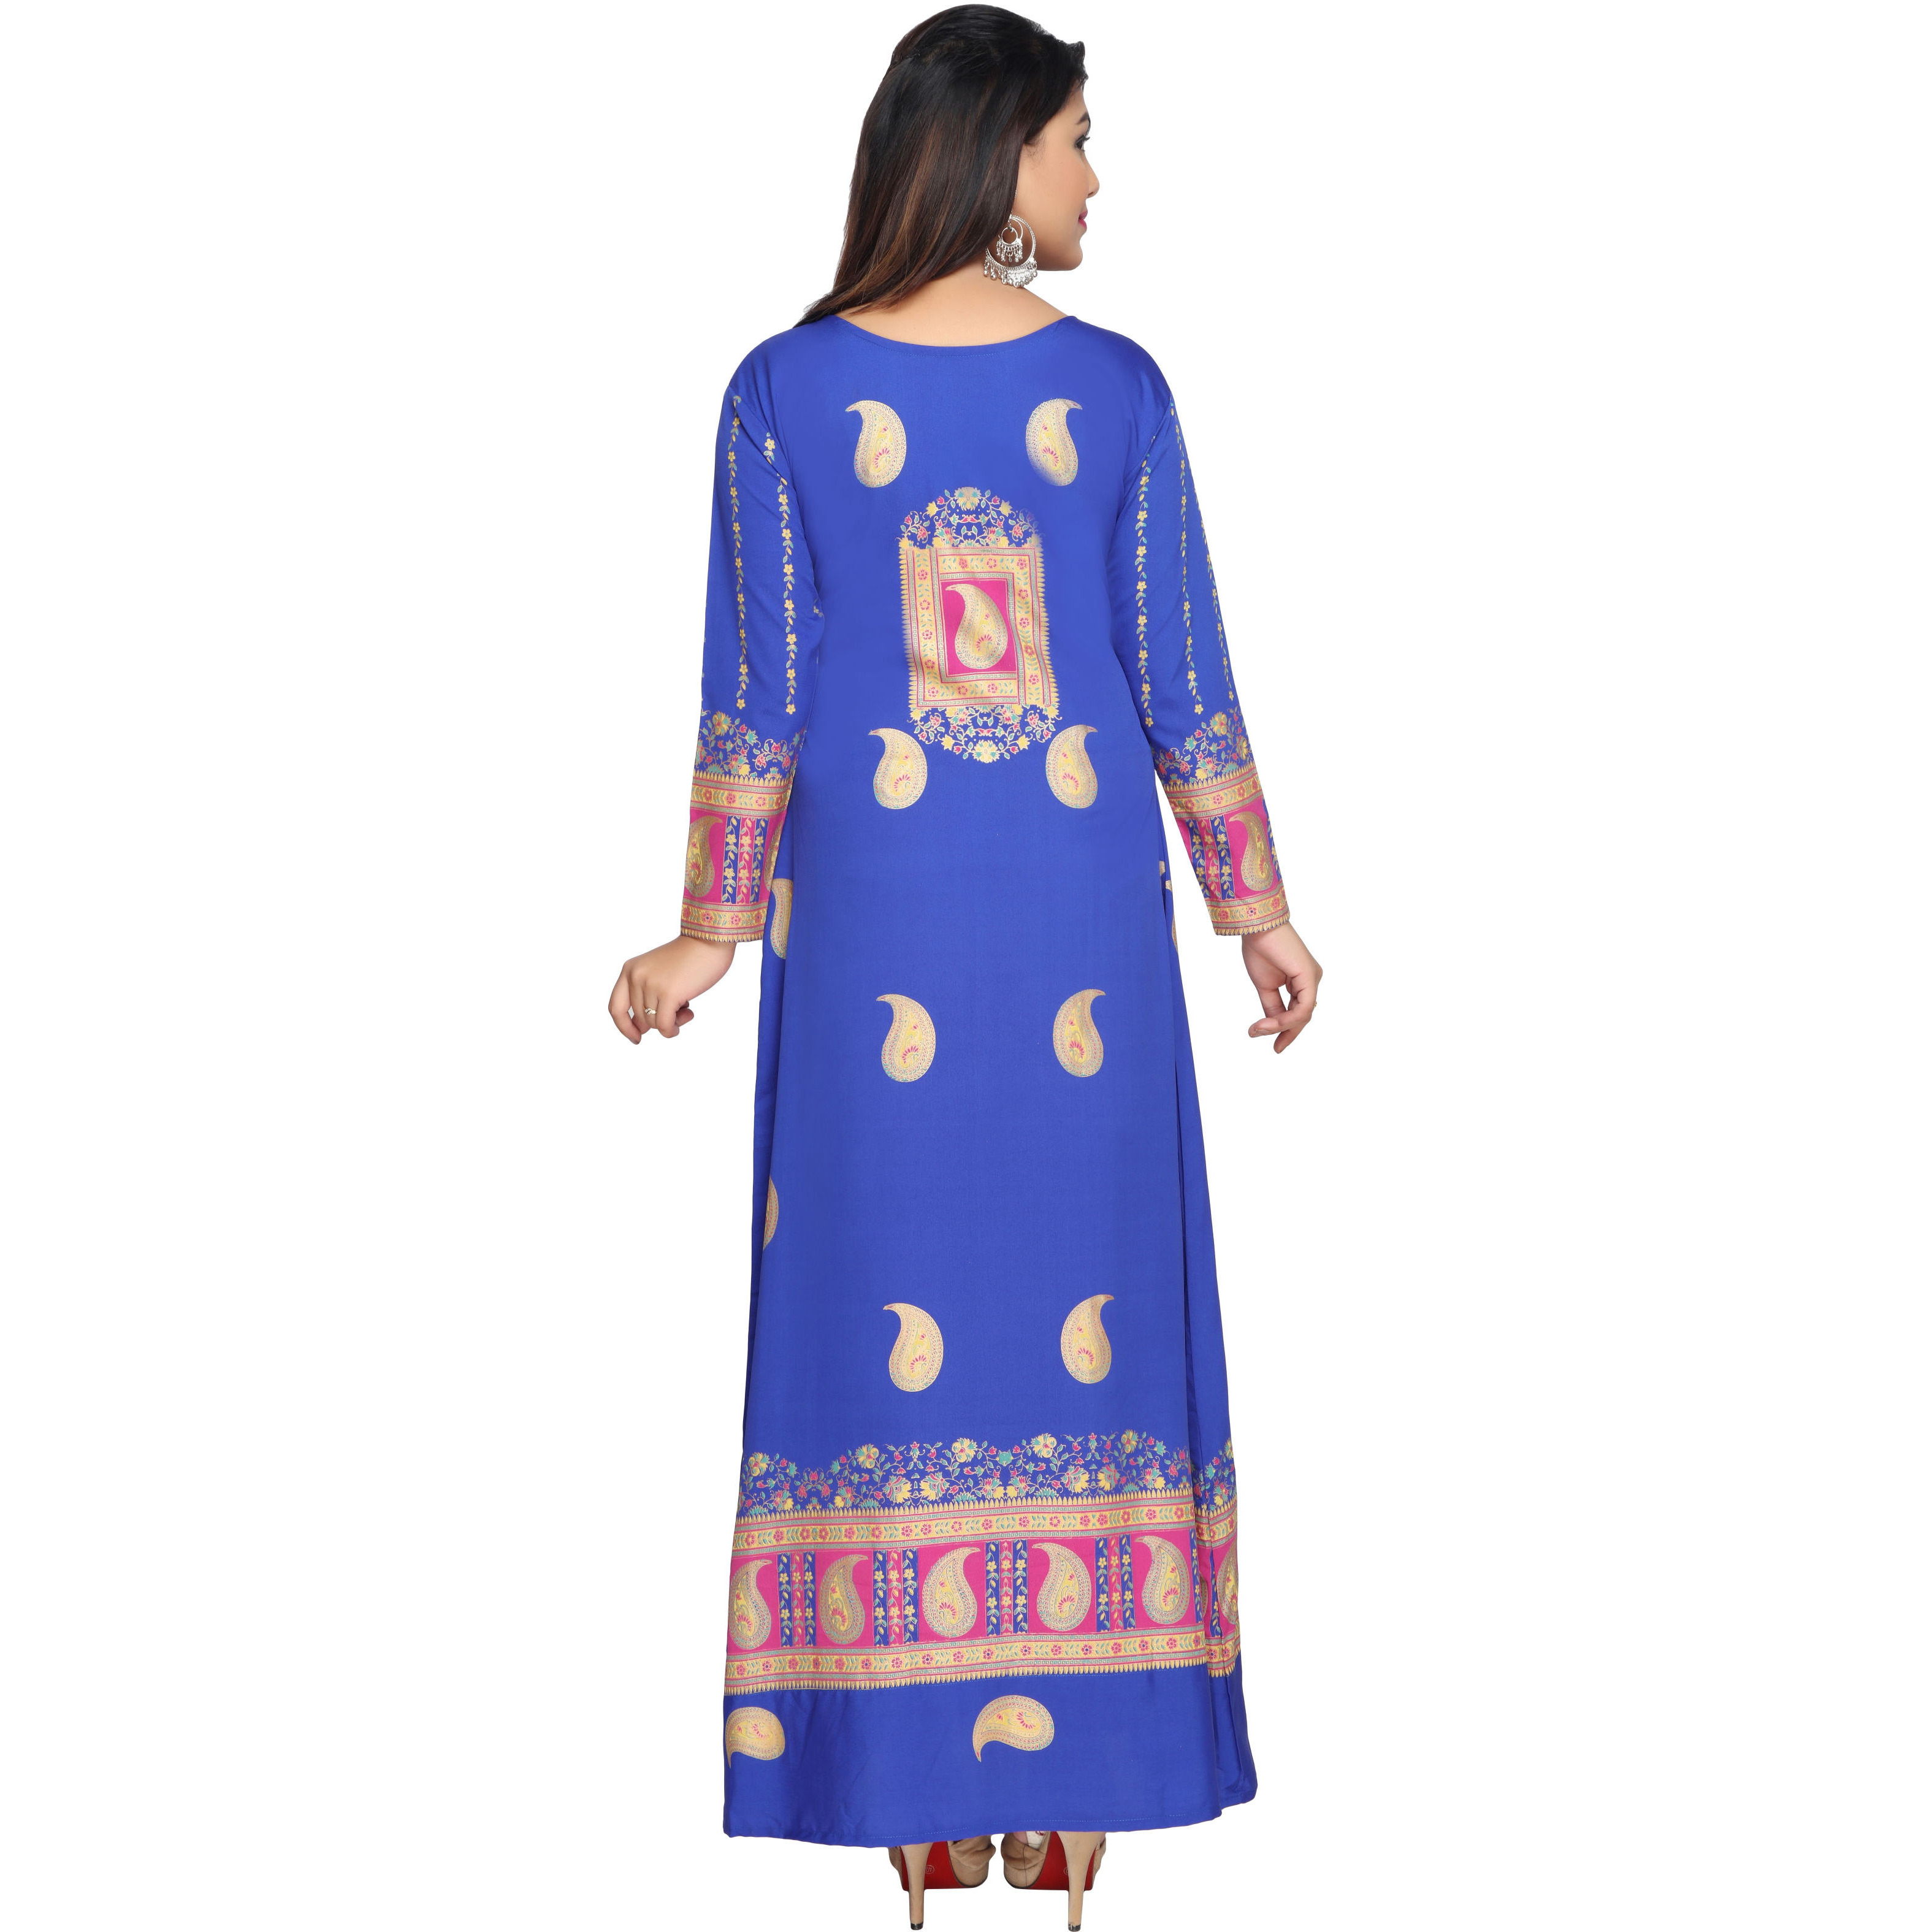 TrendyFashionMall Gold Print Kaftans Maxi Dresses with design in Front and Back (Color:TFMKFT01013-BLUE, Size:52 - 6X-PLUS)